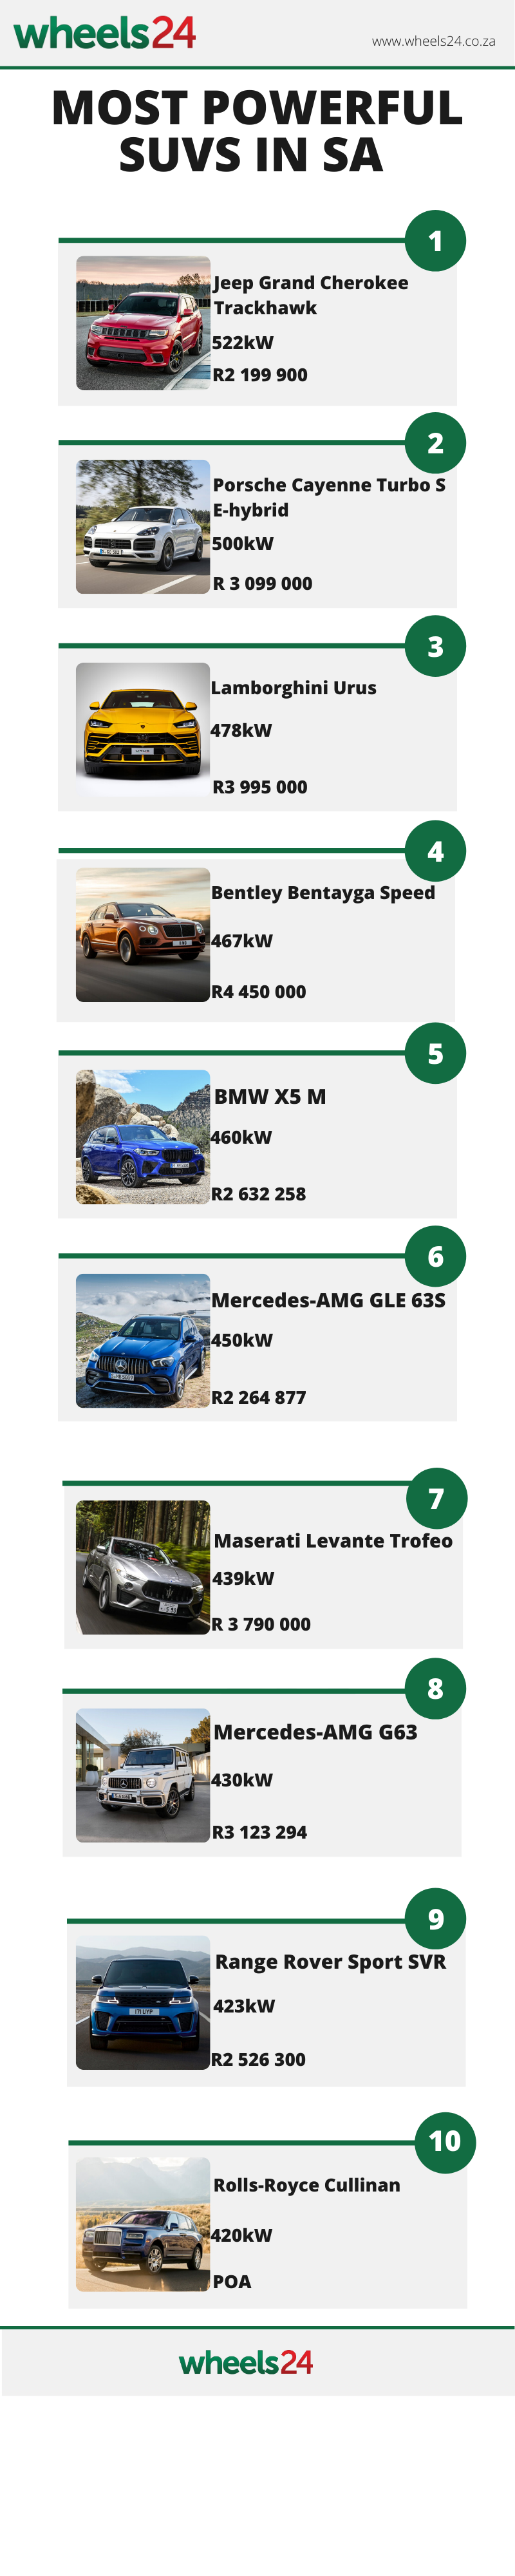 most powerful suvs